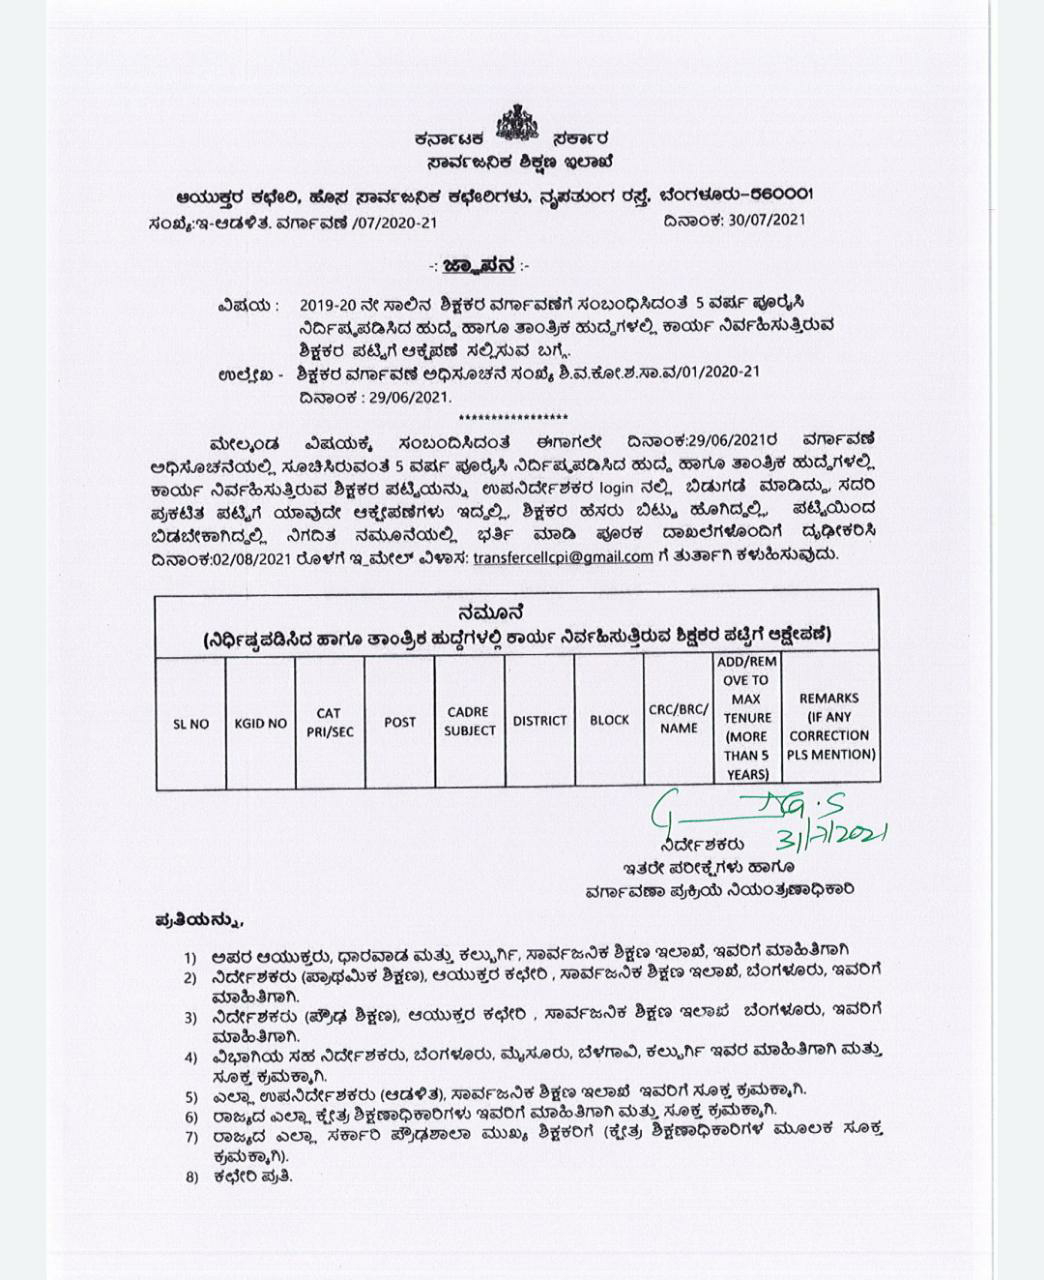 Obtaining Objection to the List of Teachers Operating for the Post and Technical Post of 5 Years on Transfer of Teachers for the Year 2019-20